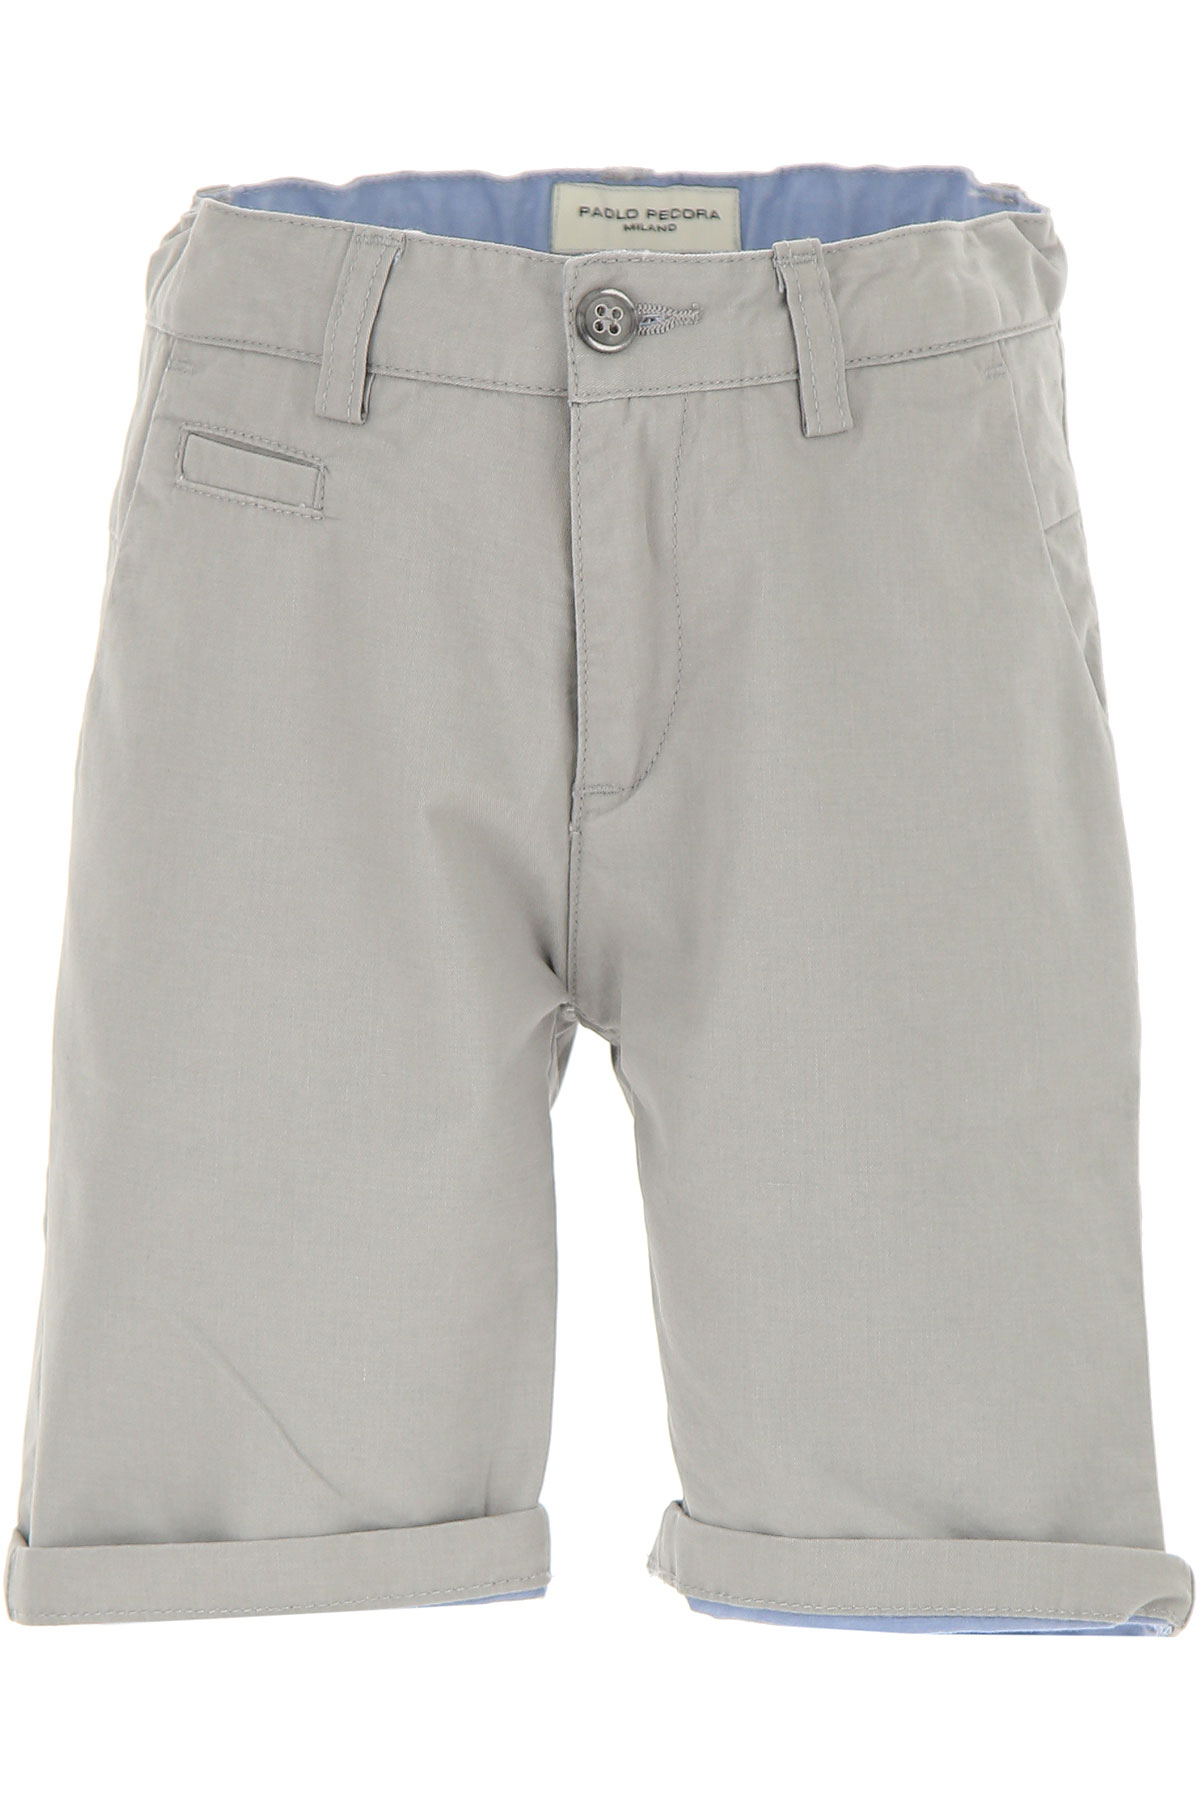 Paolo Pecora Kids Shorts for Boys On Sale in Outlet, Beige, Cotton, 2019, 5Y 6Y